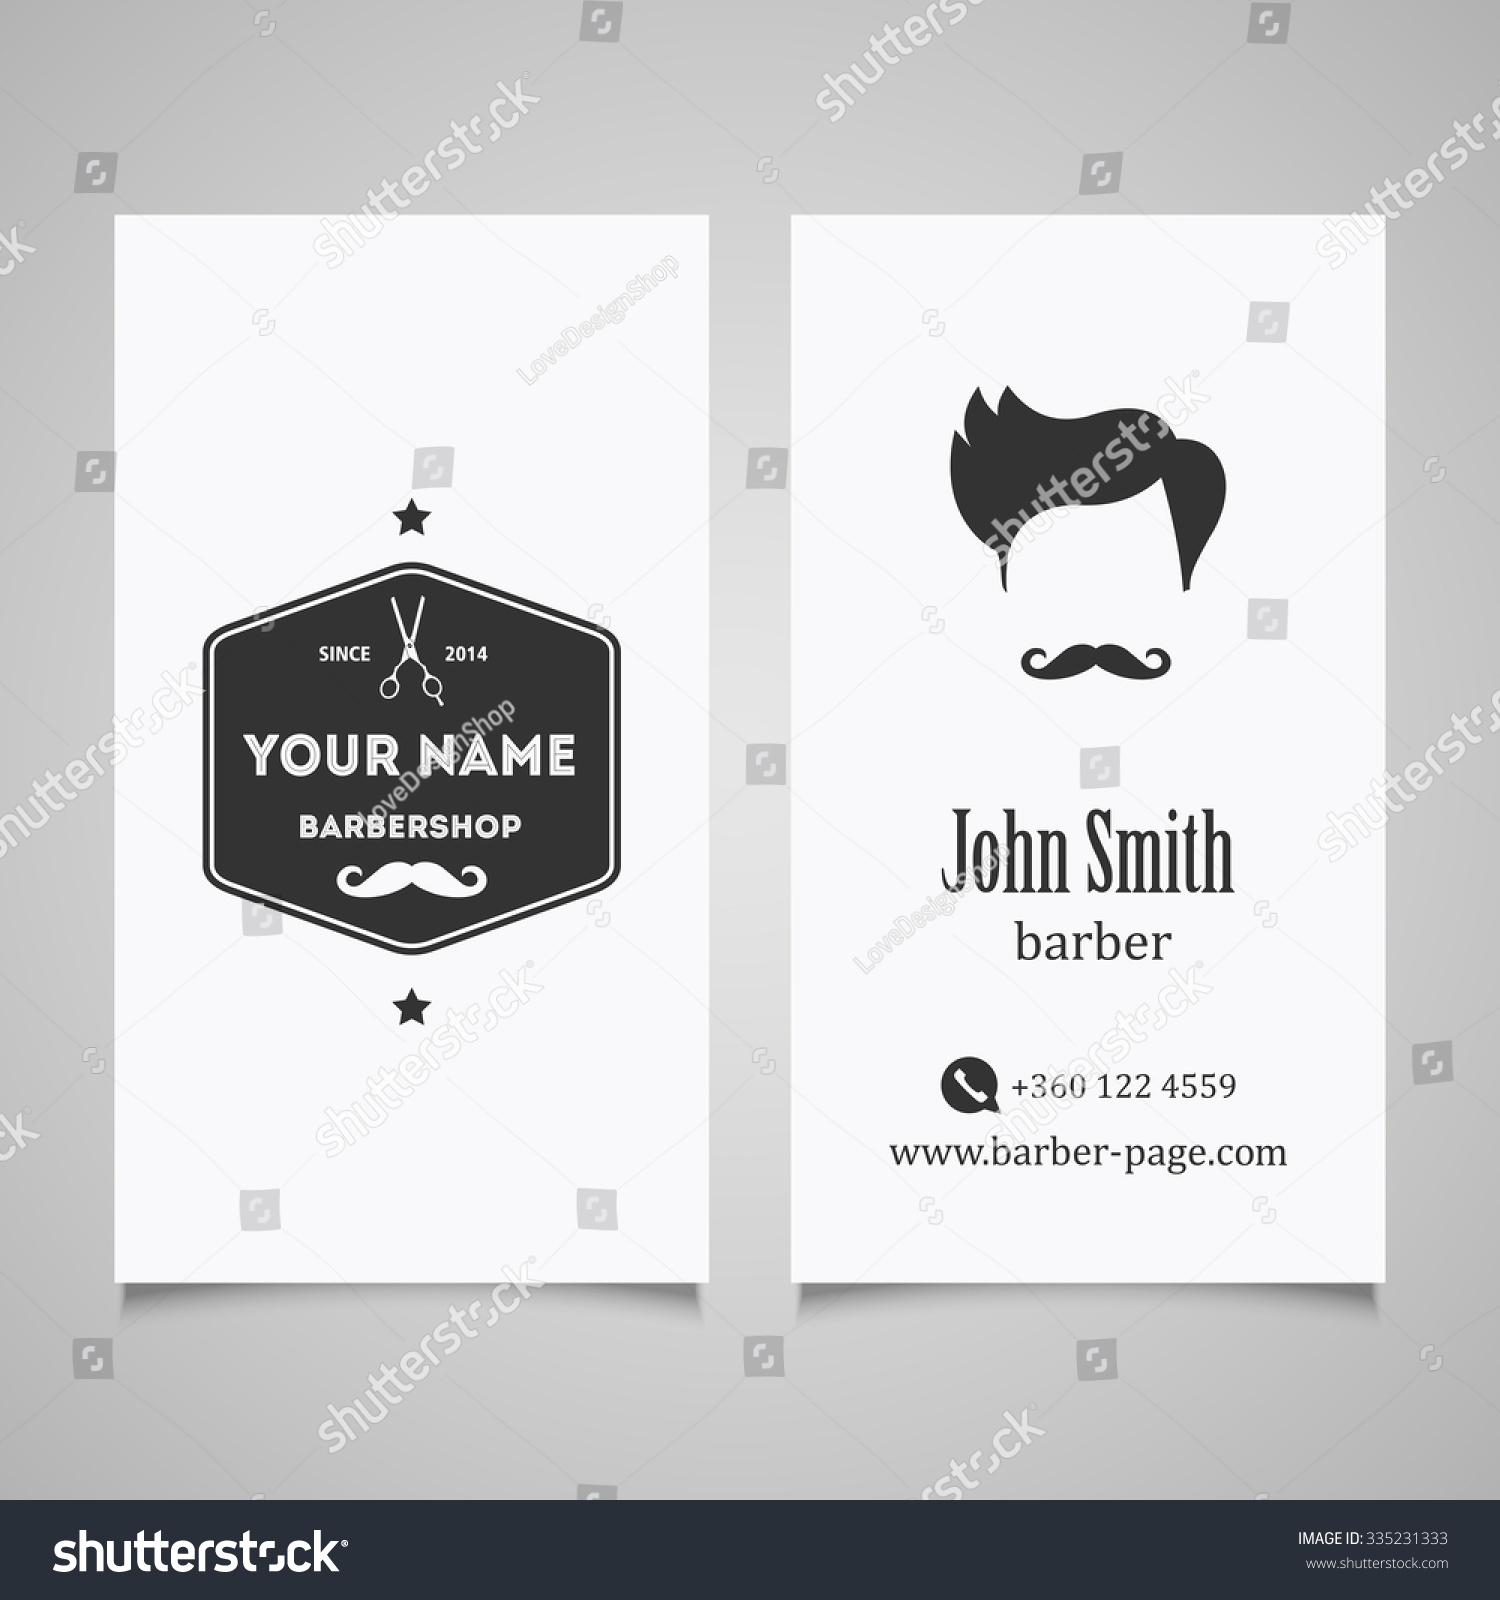 Fresh Pics Of Barber Business Cards – Business Cards and Resume